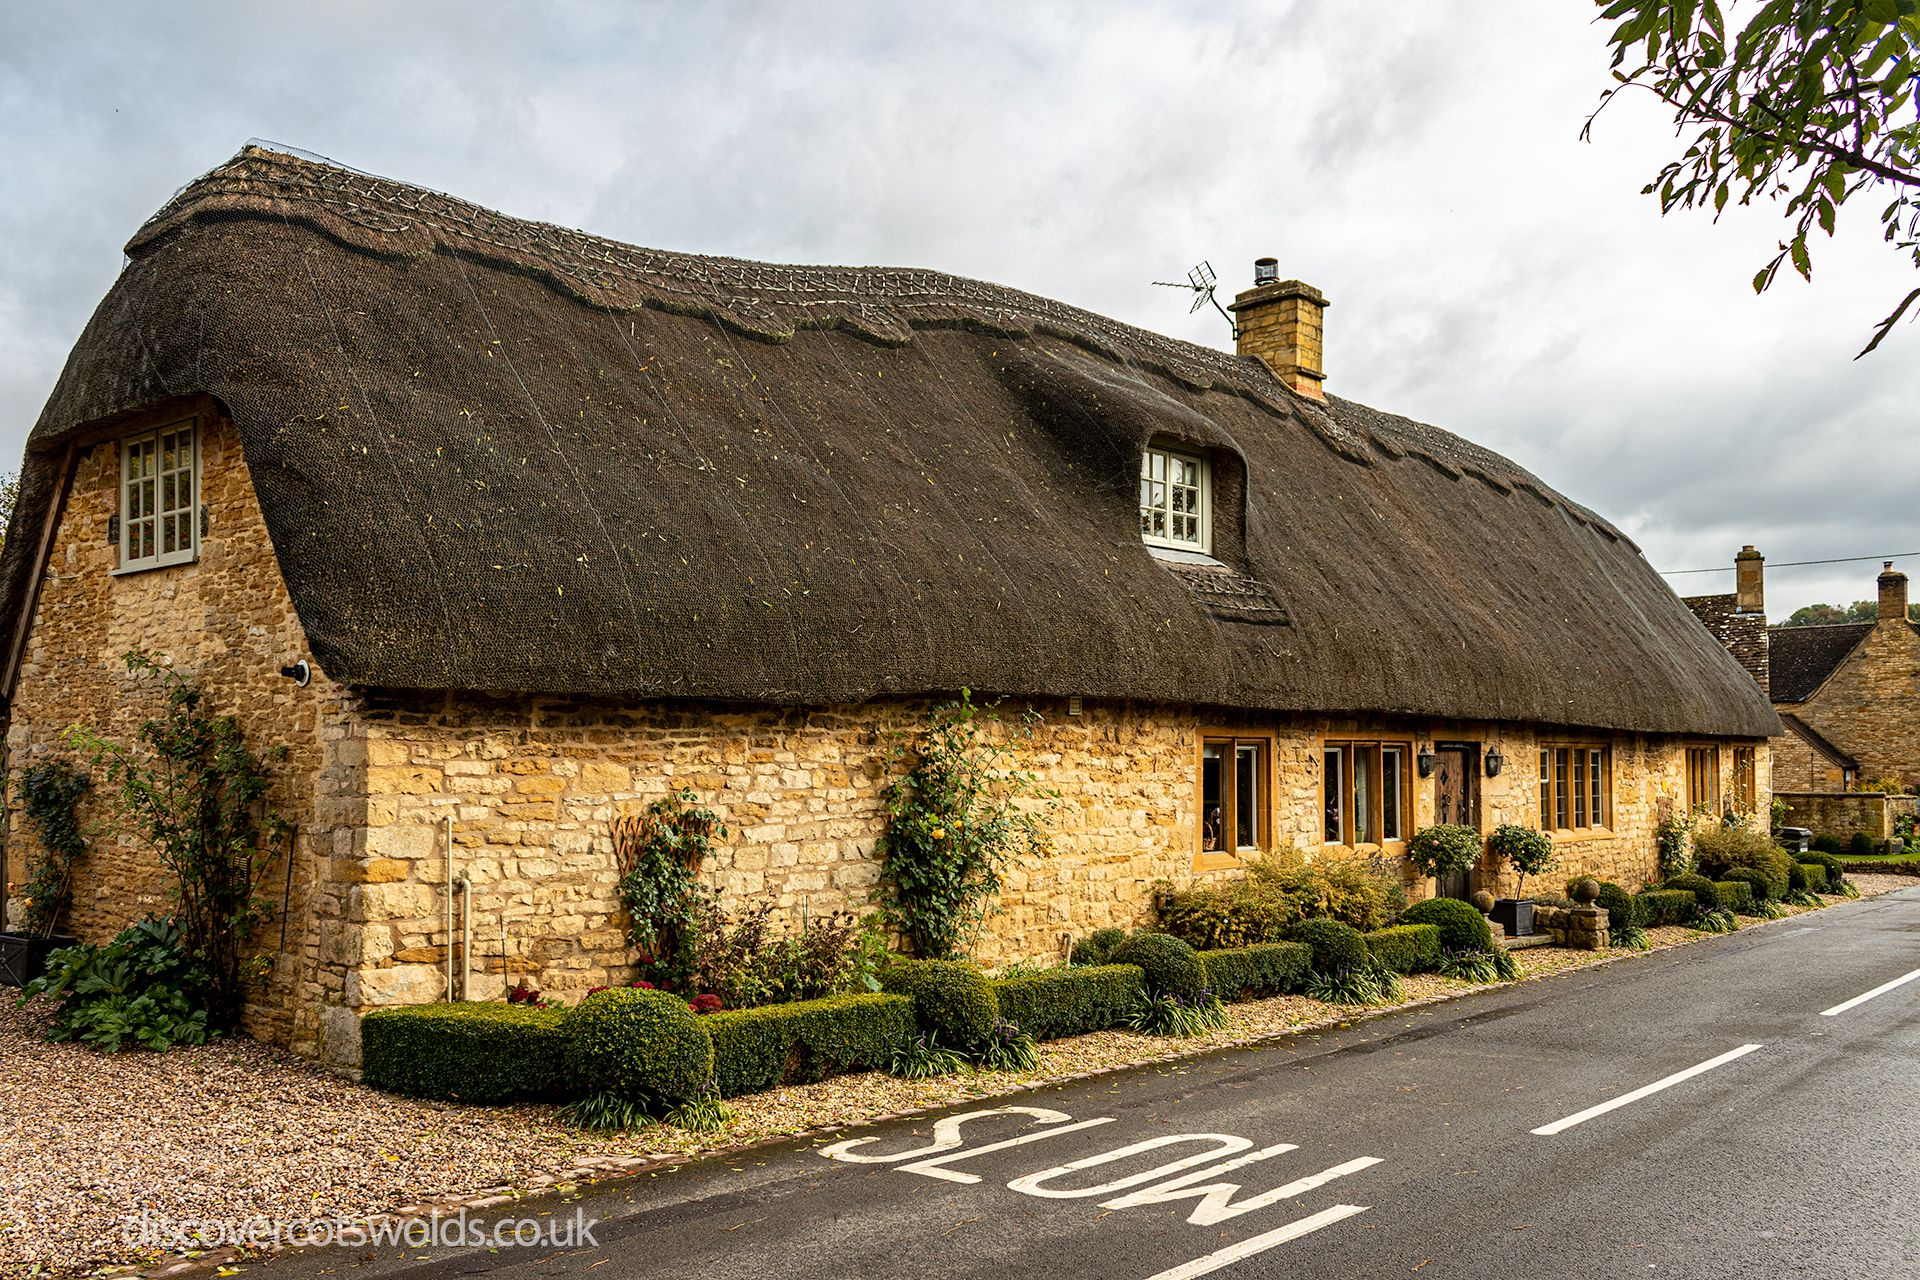 Thatched cottage in the Cotswolds village of Broad Campden